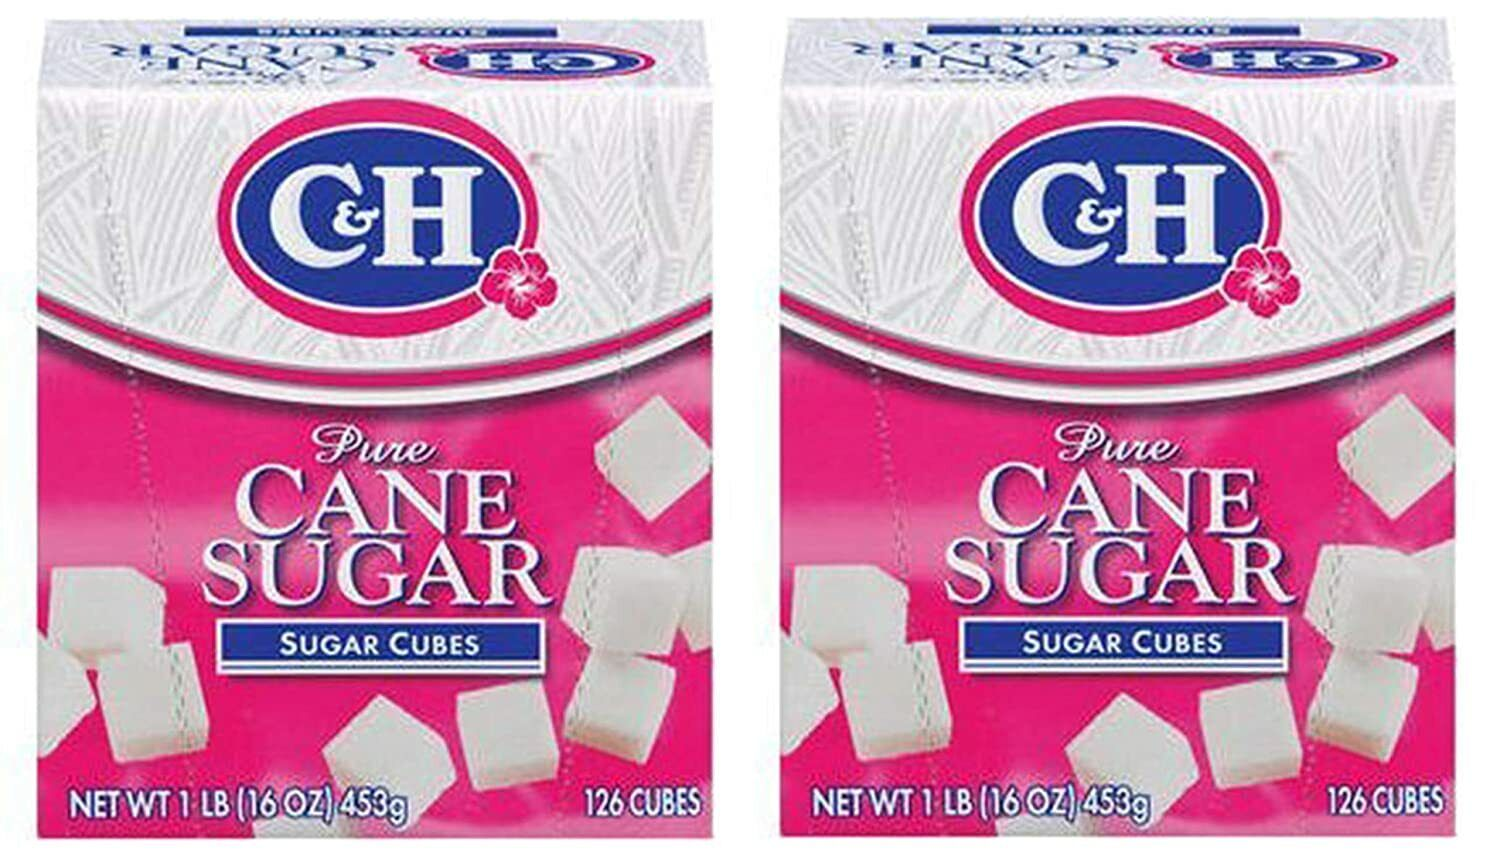 C&H Pure Sugar Cane Cubes, 16 oz (Pack of 2) Baking & Desserts